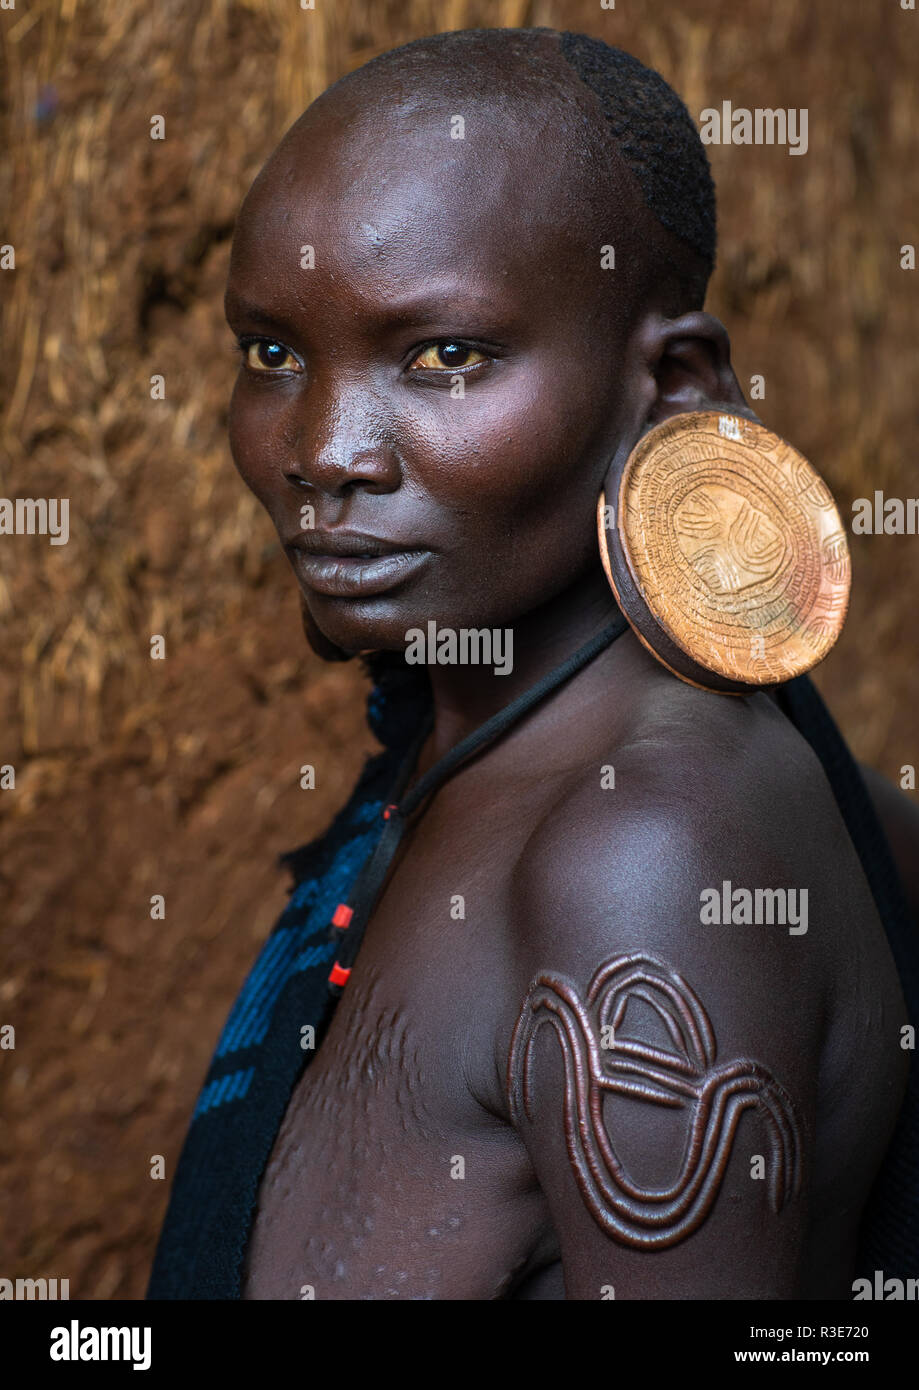 Portrait of a suri tribe woman with enlarged earlobes and huge earrings, Omo valley, Kibish, Ethiopia - Stock Image